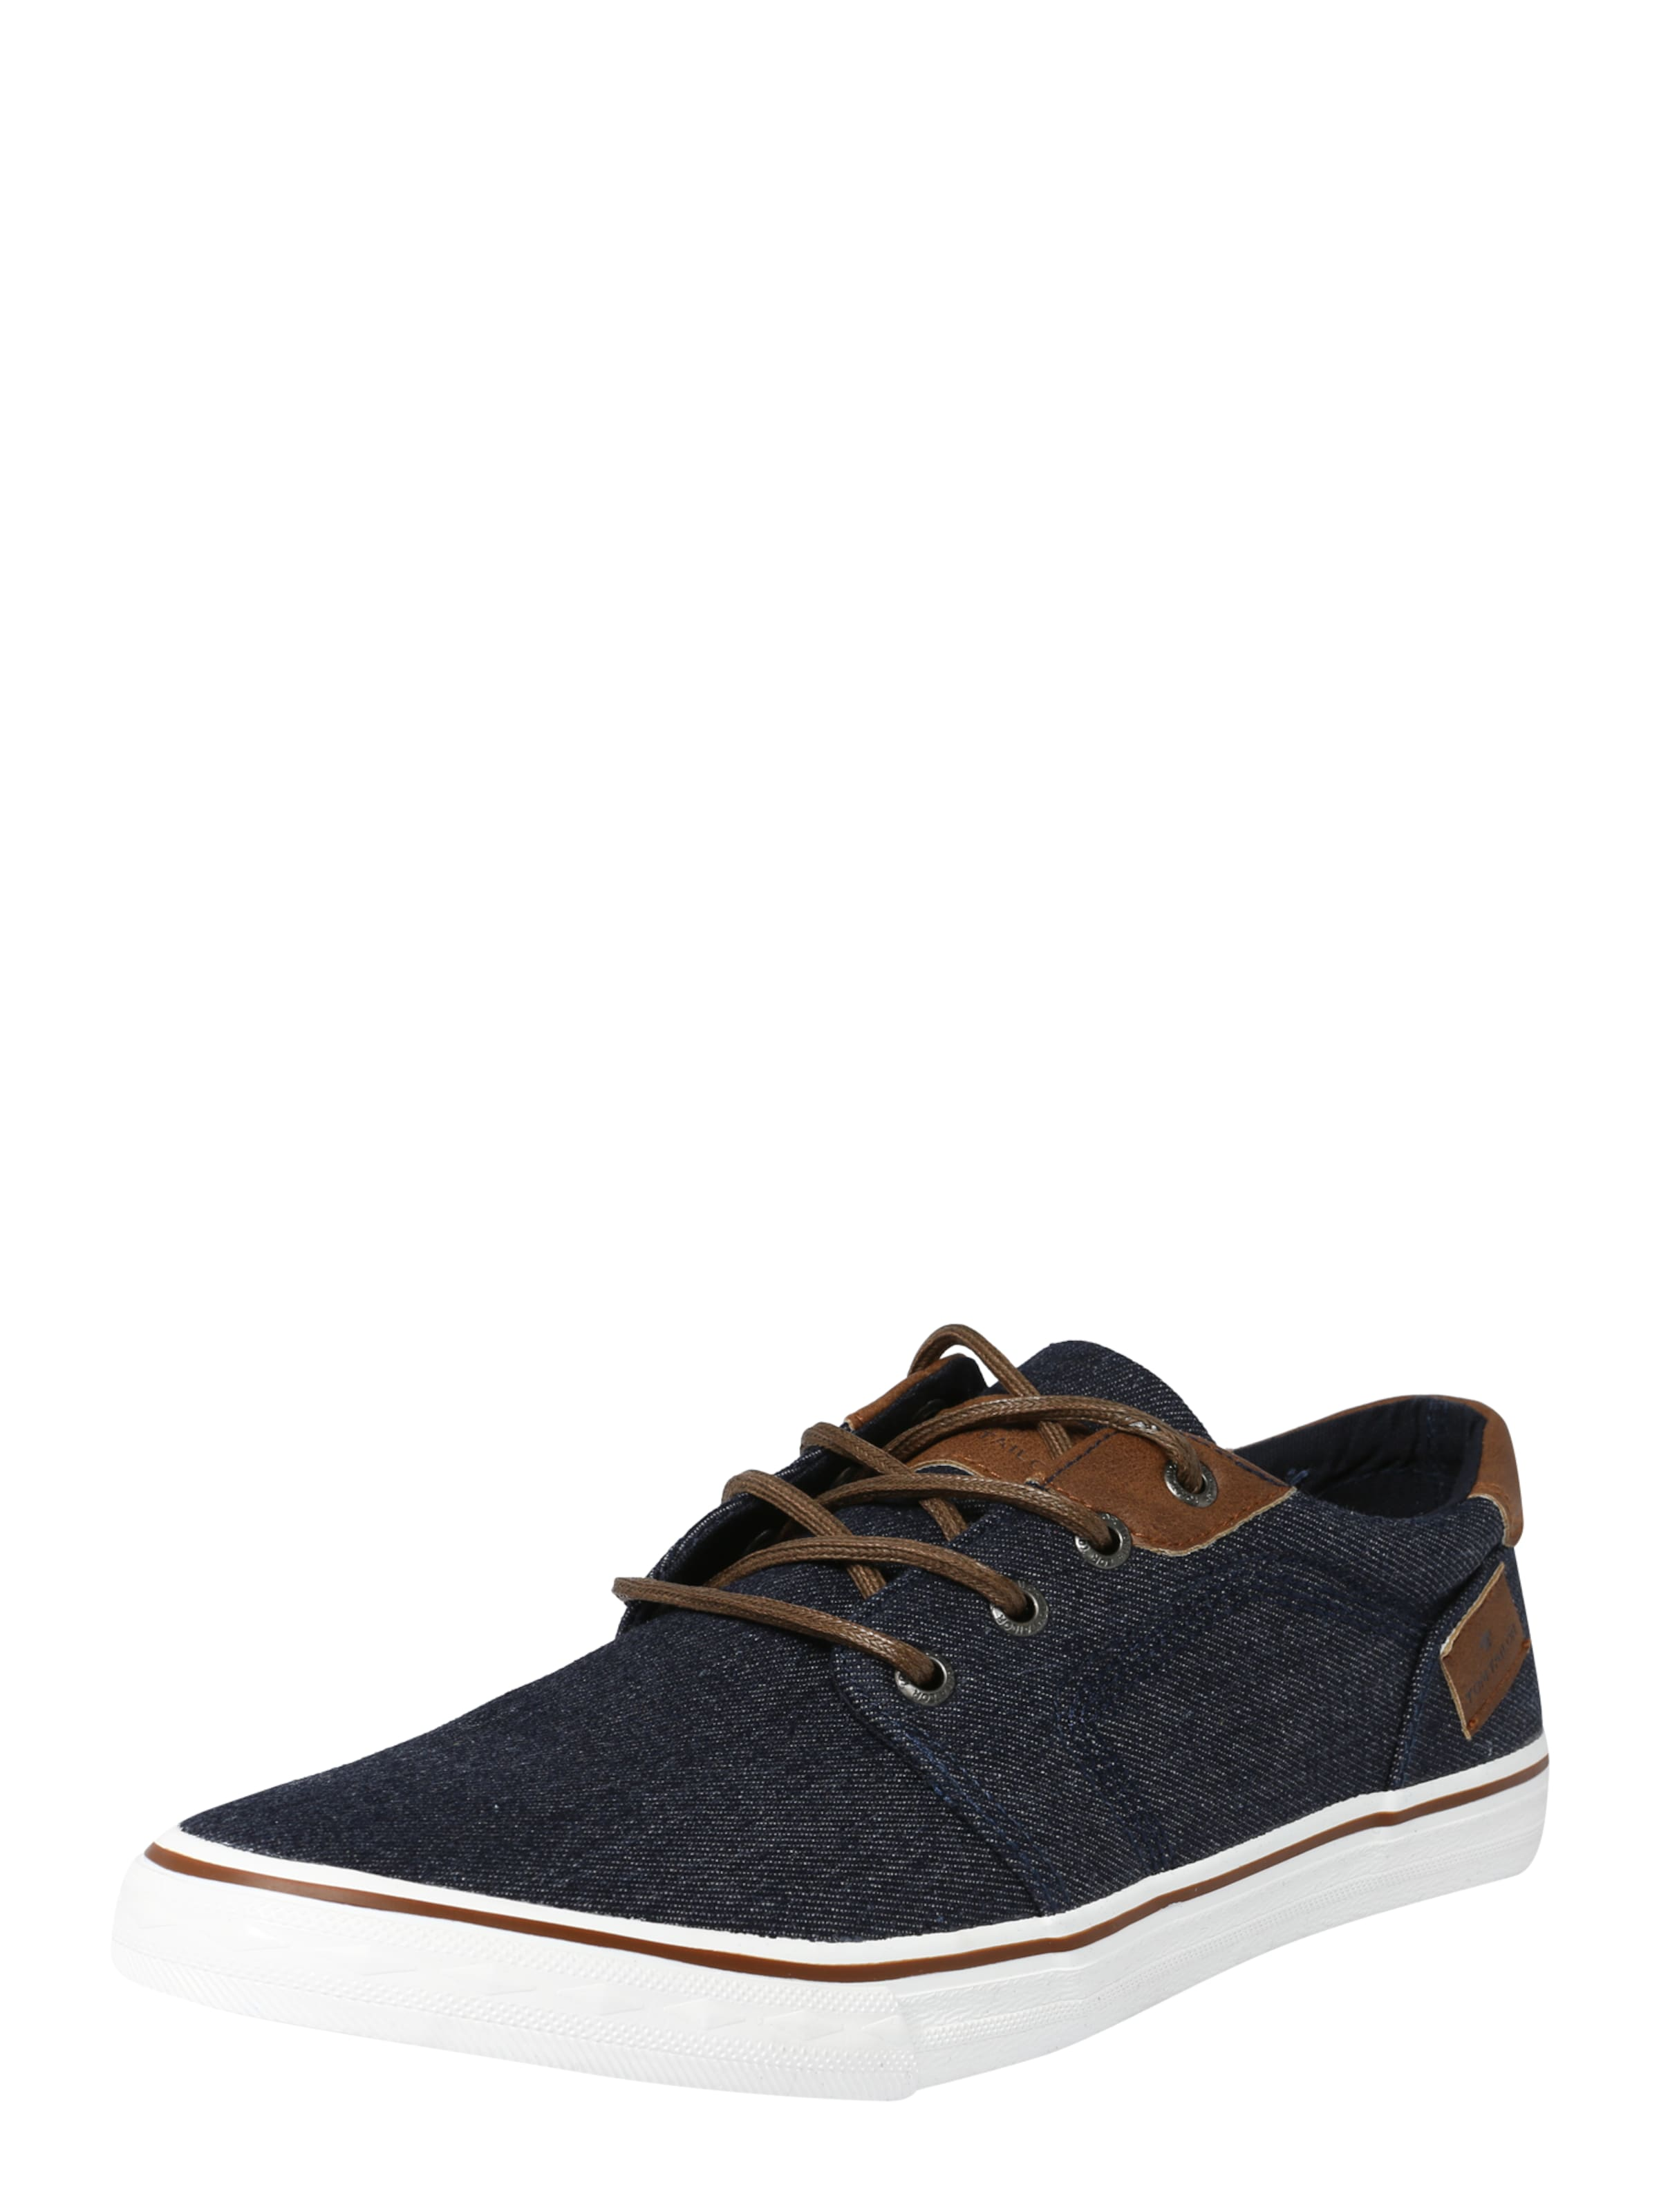 Laag Tom Sneakers Tailor Navy In 3AR5qjL4